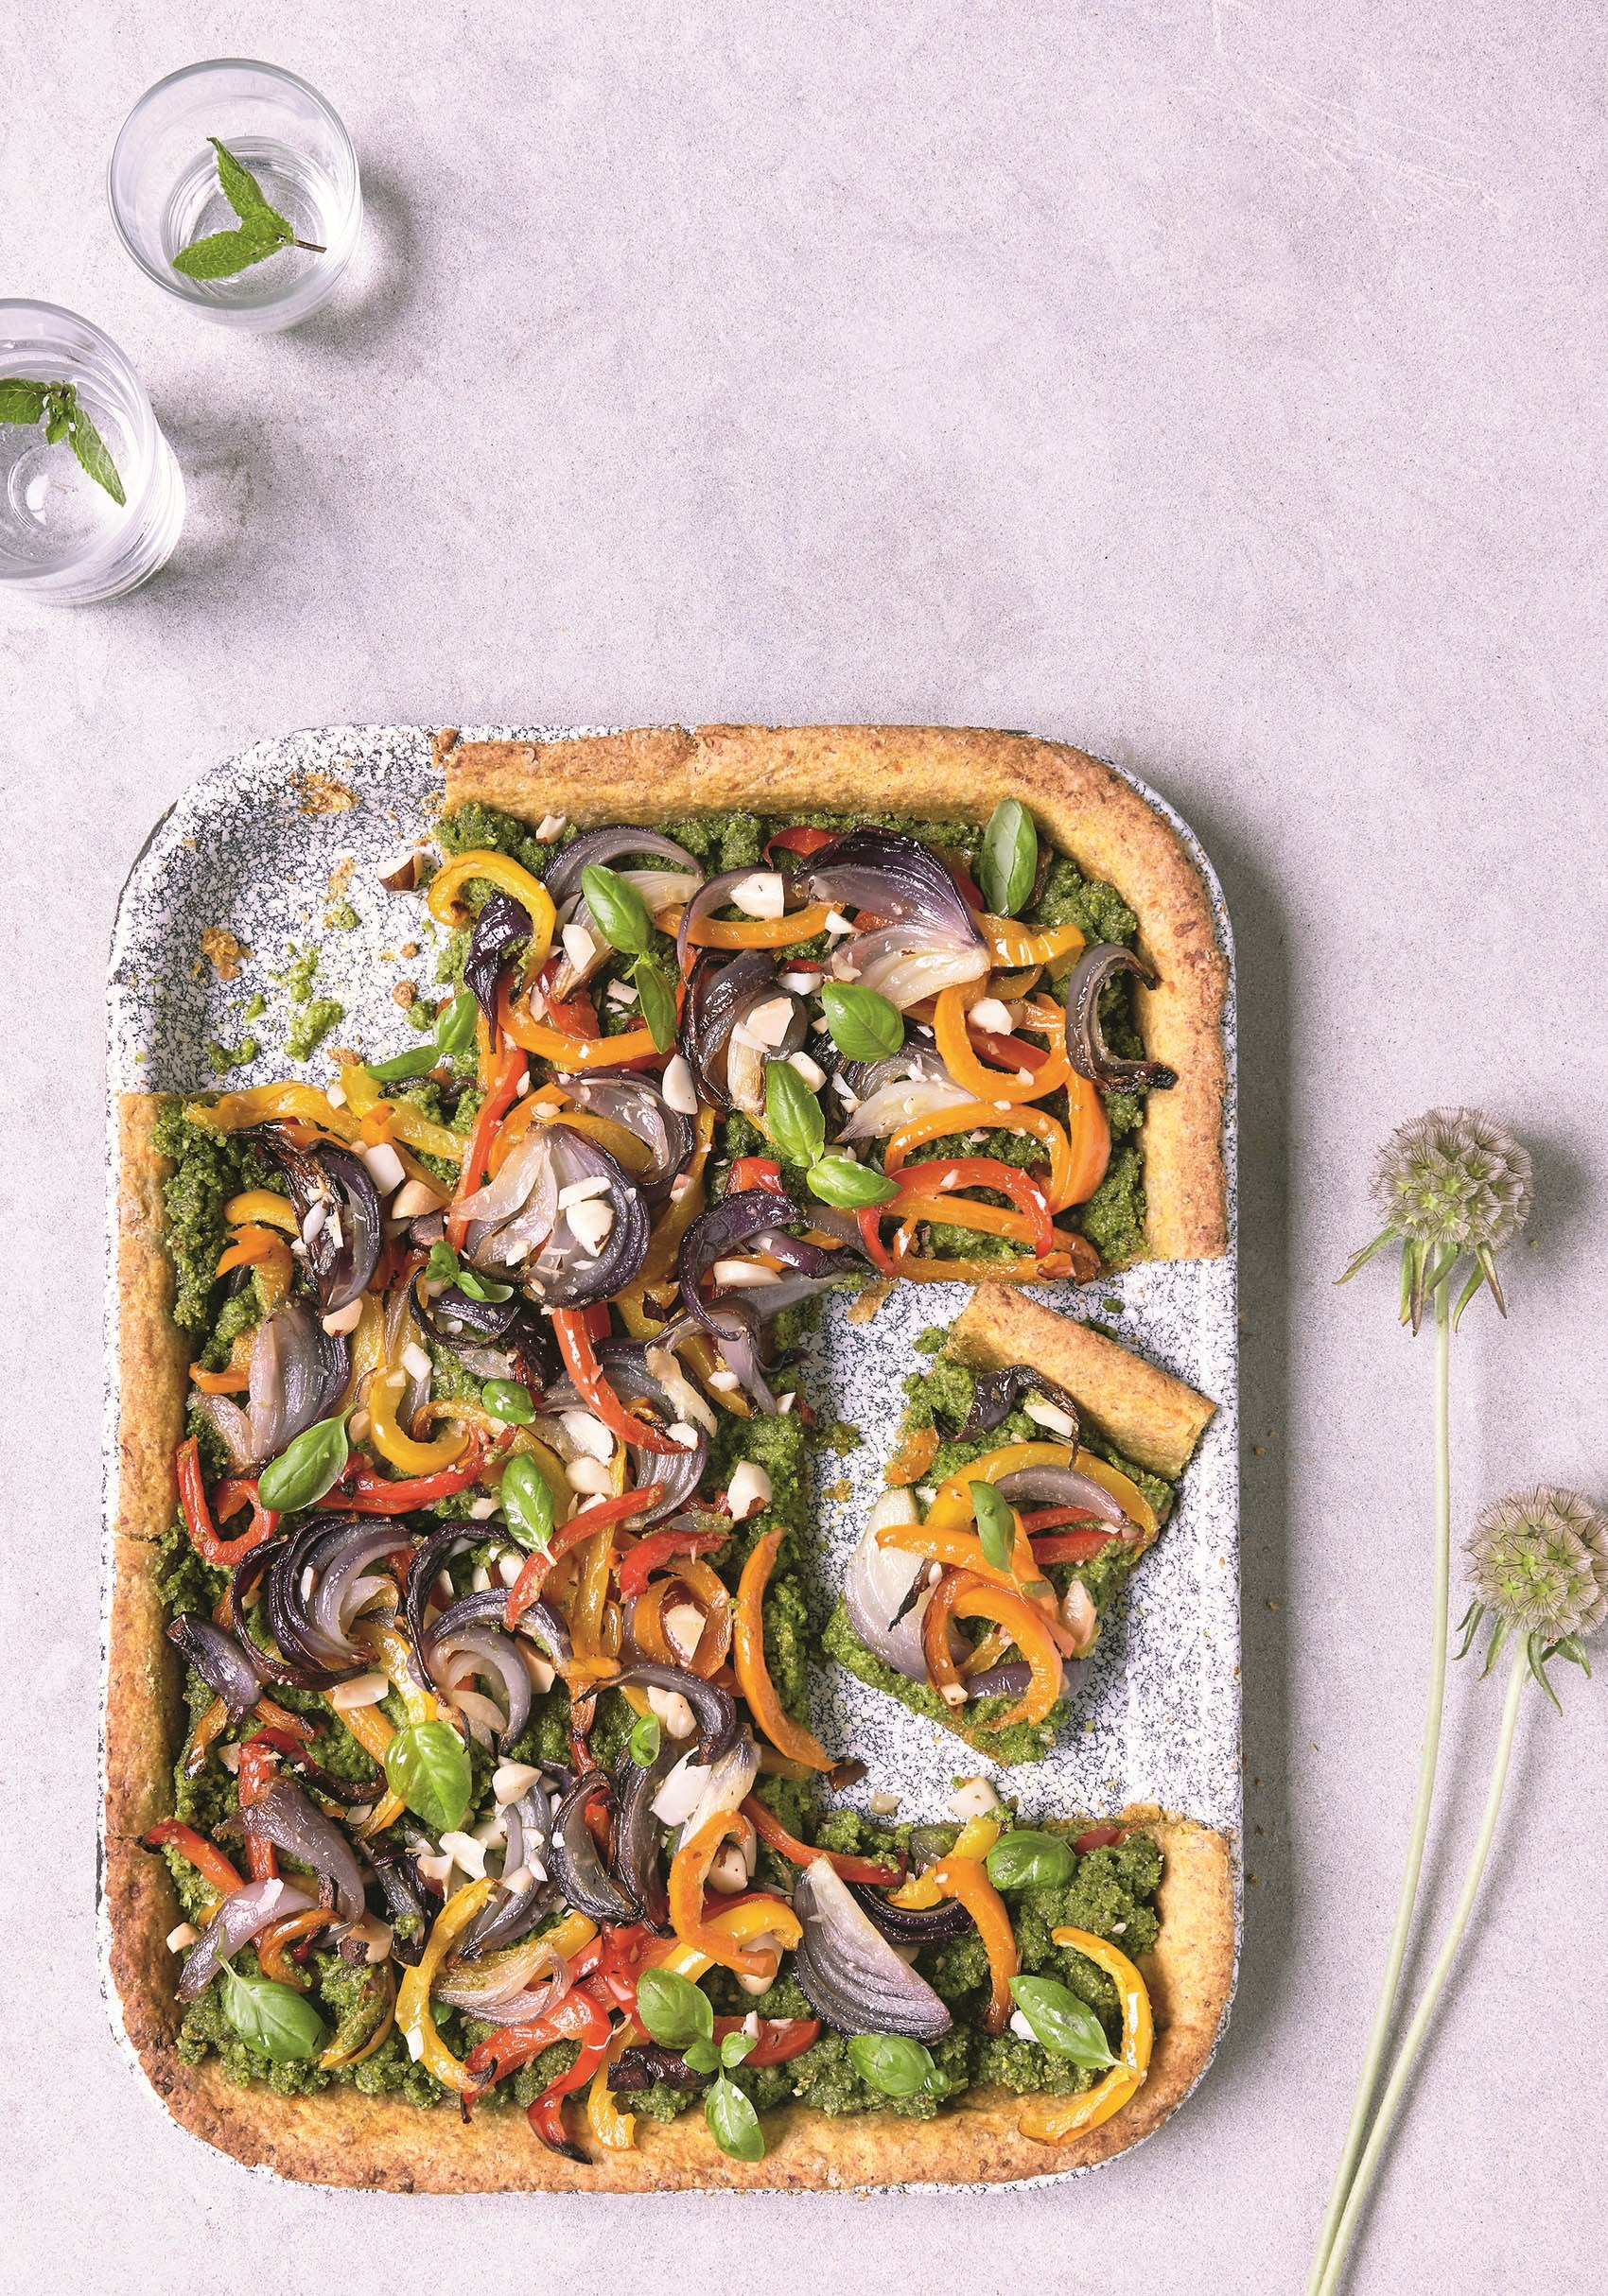 Niomi Smart's pepper & onion pesto tart